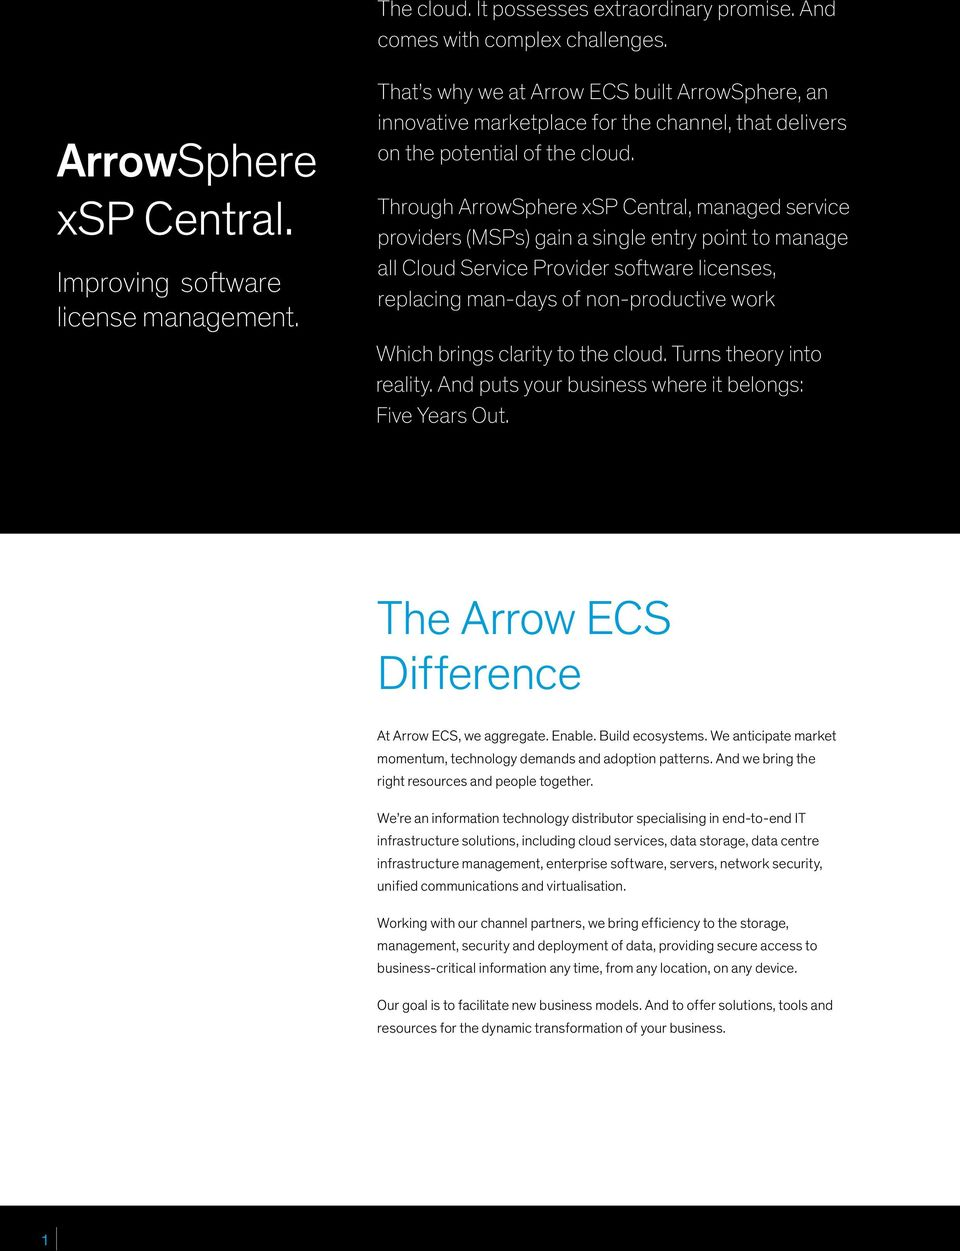 Through ArrowSphere xsp Central, managed service providers (MSPs) gain a single entry point to manage all Cloud Service Provider software licenses, replacing man-days of non-productive work Which